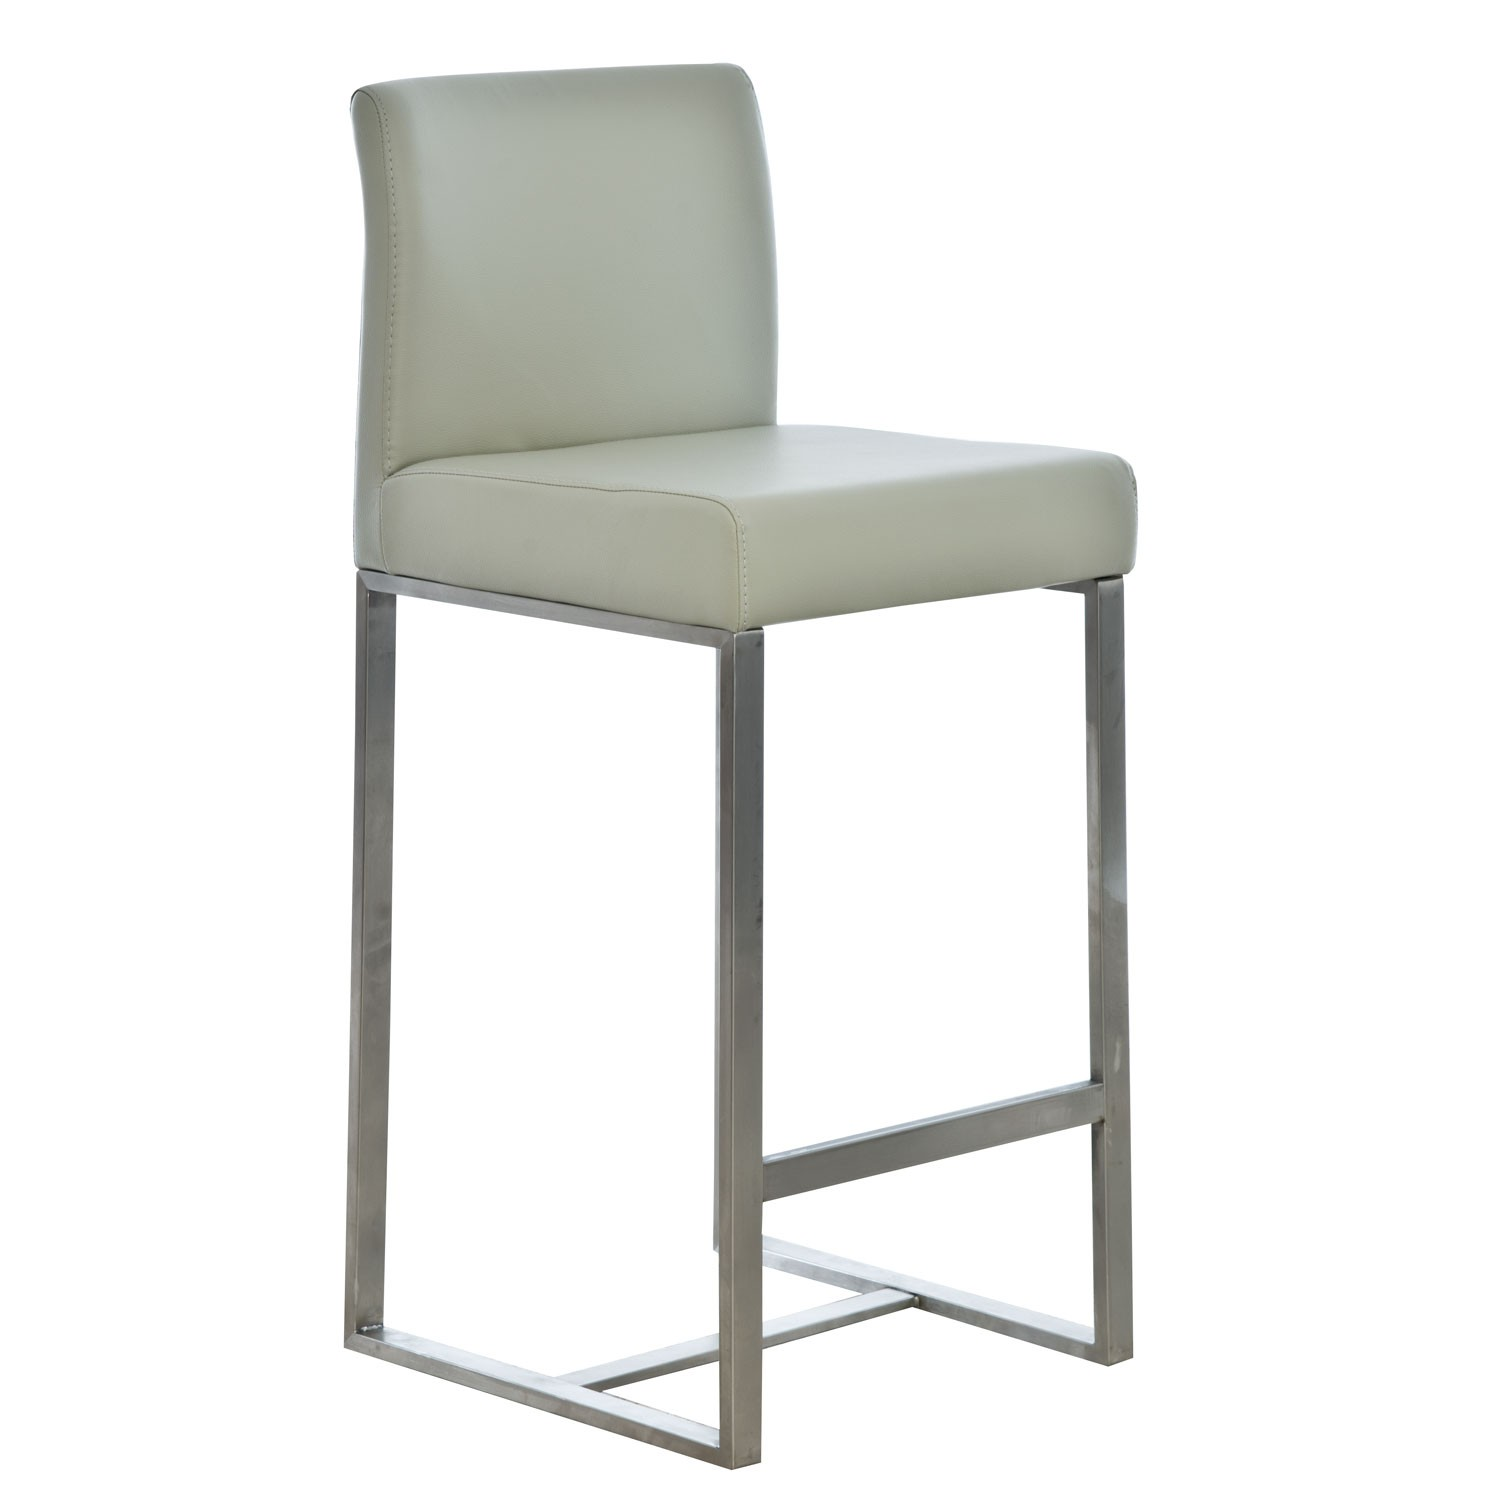 Wondrous Casa Indus Bar Stool Gmtry Best Dining Table And Chair Ideas Images Gmtryco